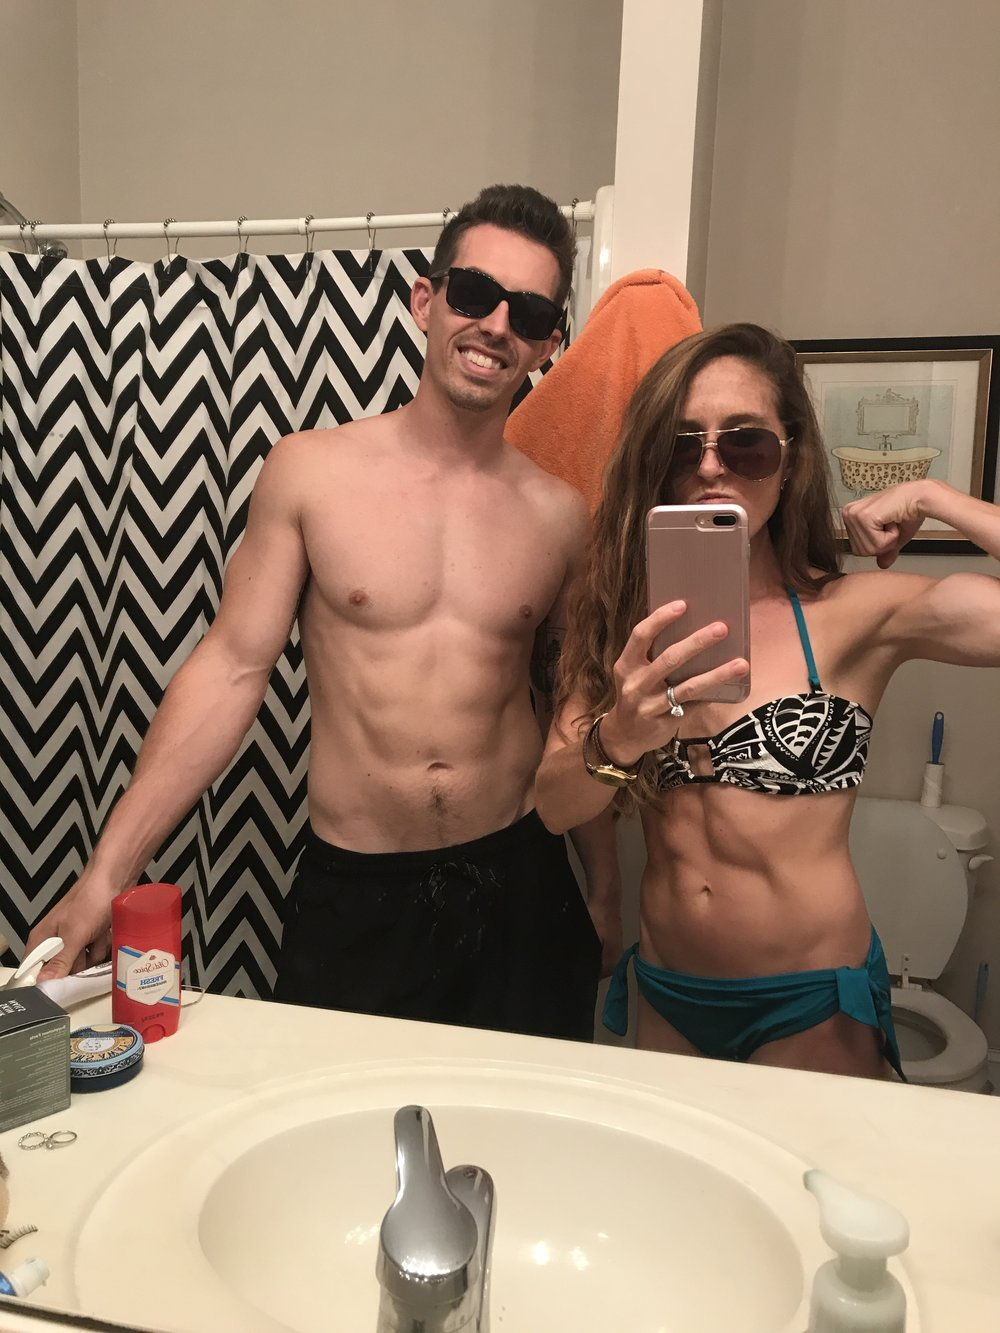 I'm such a douche bag and made my husband take this with me! HAAA! This is also one of my best friends bathrooms so I kinda hope she texts me to remind me what a tramp I am.